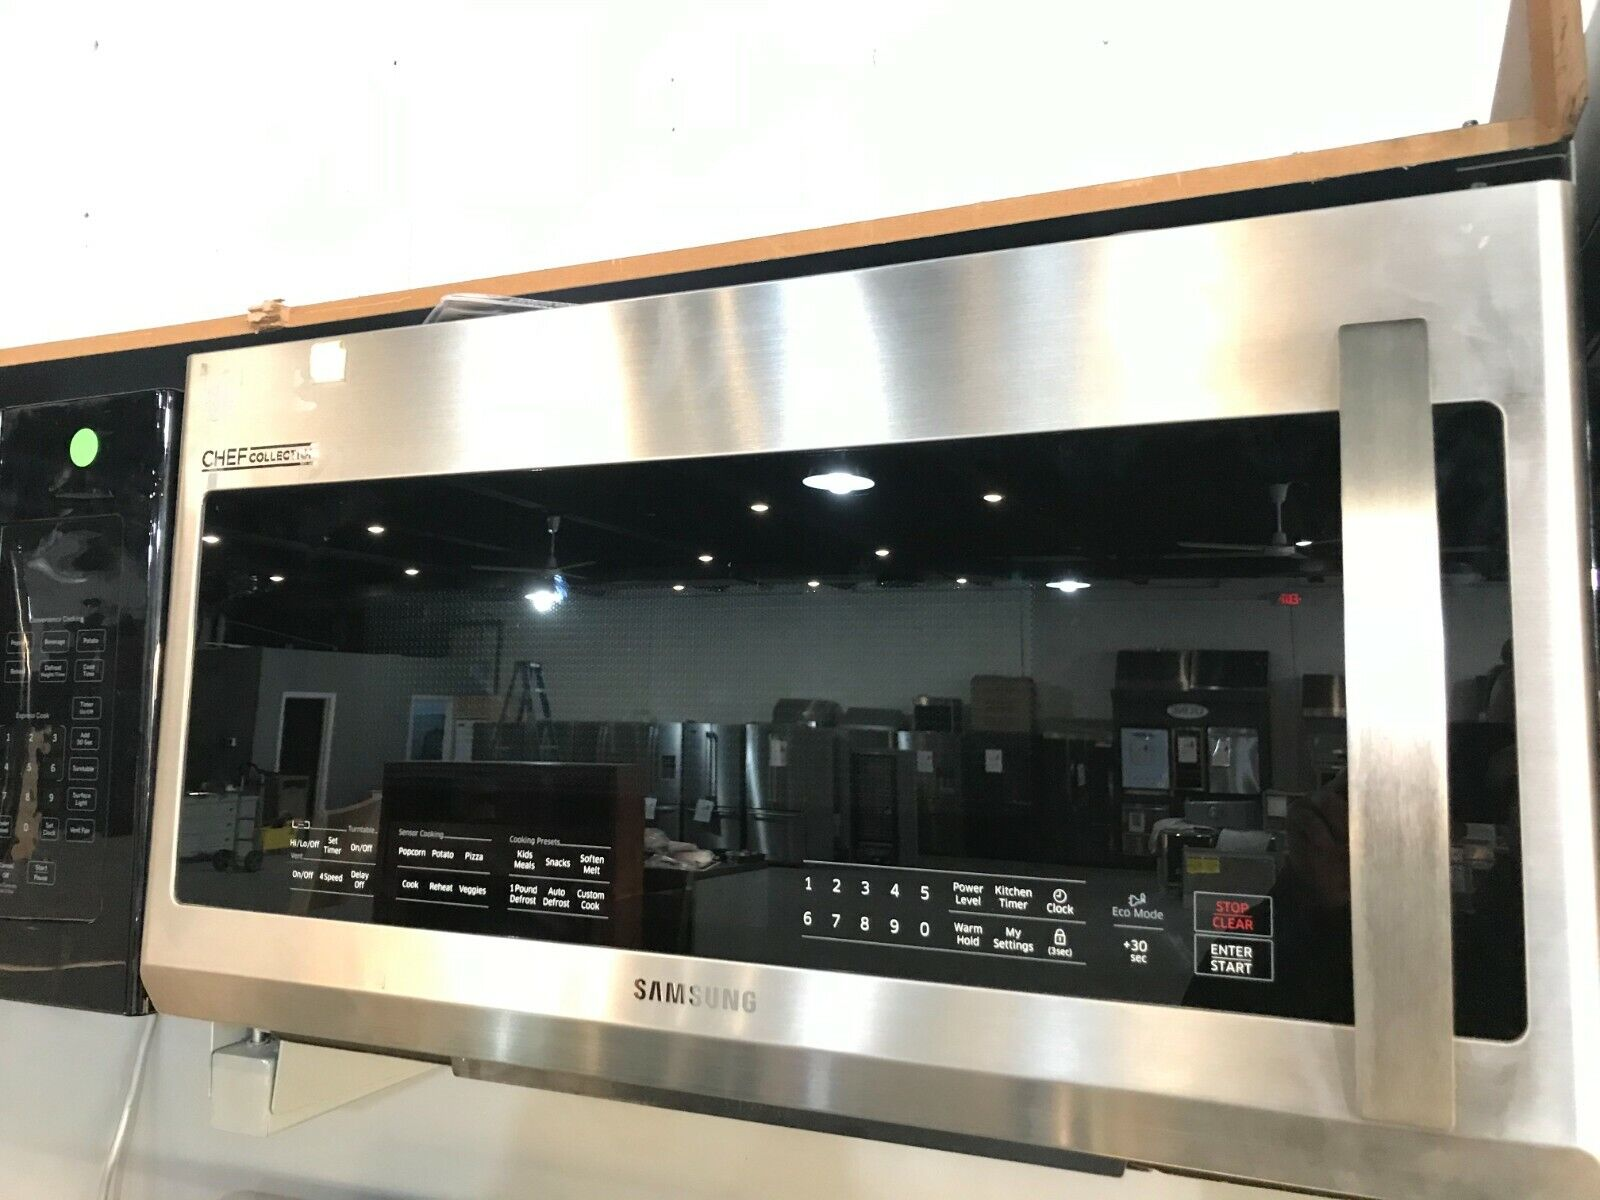 SAMSUNG 2.1 CU. FT. OVER-THE-RANGE CHEF COLLECTION MICROWAVE